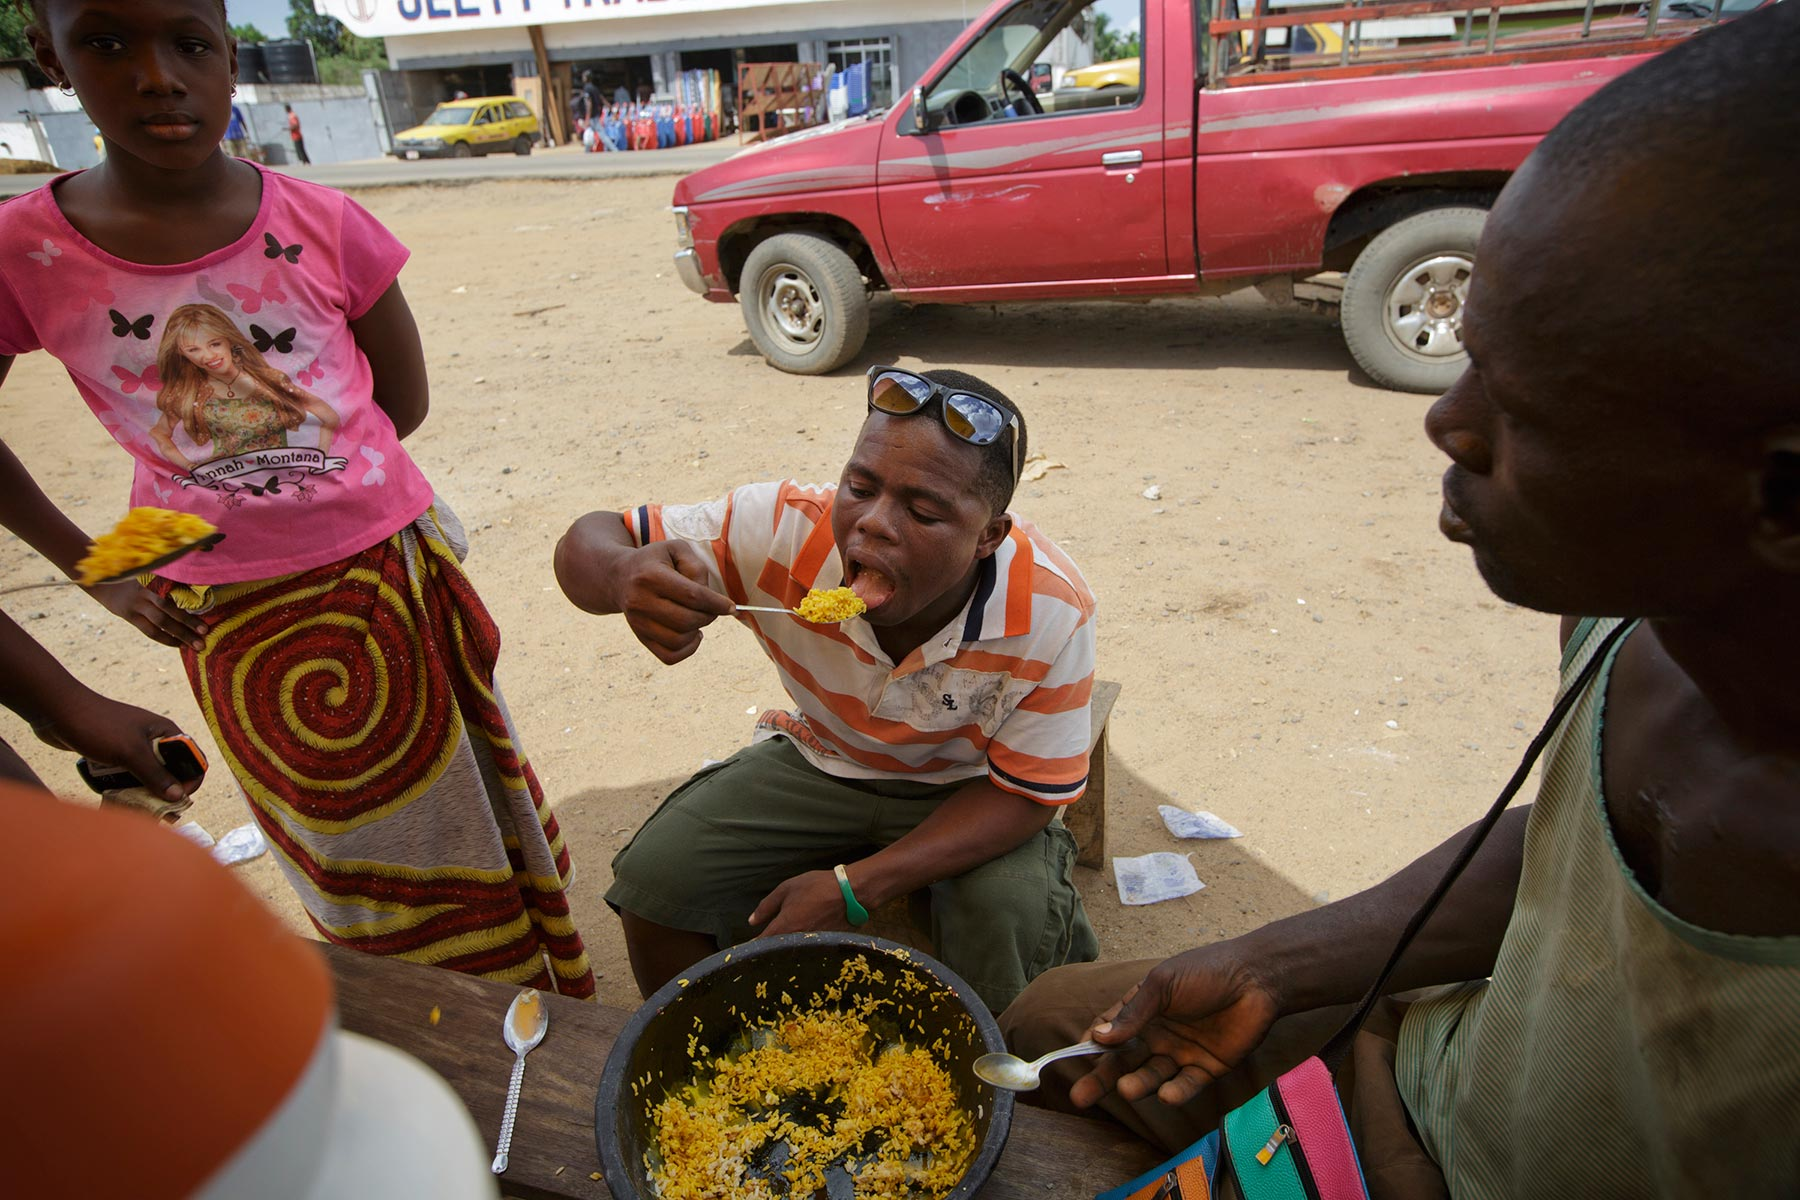 MAY 29, 2015 MONROVIA, LIBERIA Former child soldier Momo Dukoe, 25, eats lunch in Monrovia, Liberia on May 29, 2015. Momo, who was forcefully recruited to the government militia in his village in Lofa, northern Liberia when he was 11 years old, has fought for several years during the country's civil war which ended in Aug 2003. Photo by Kuni Takahashi